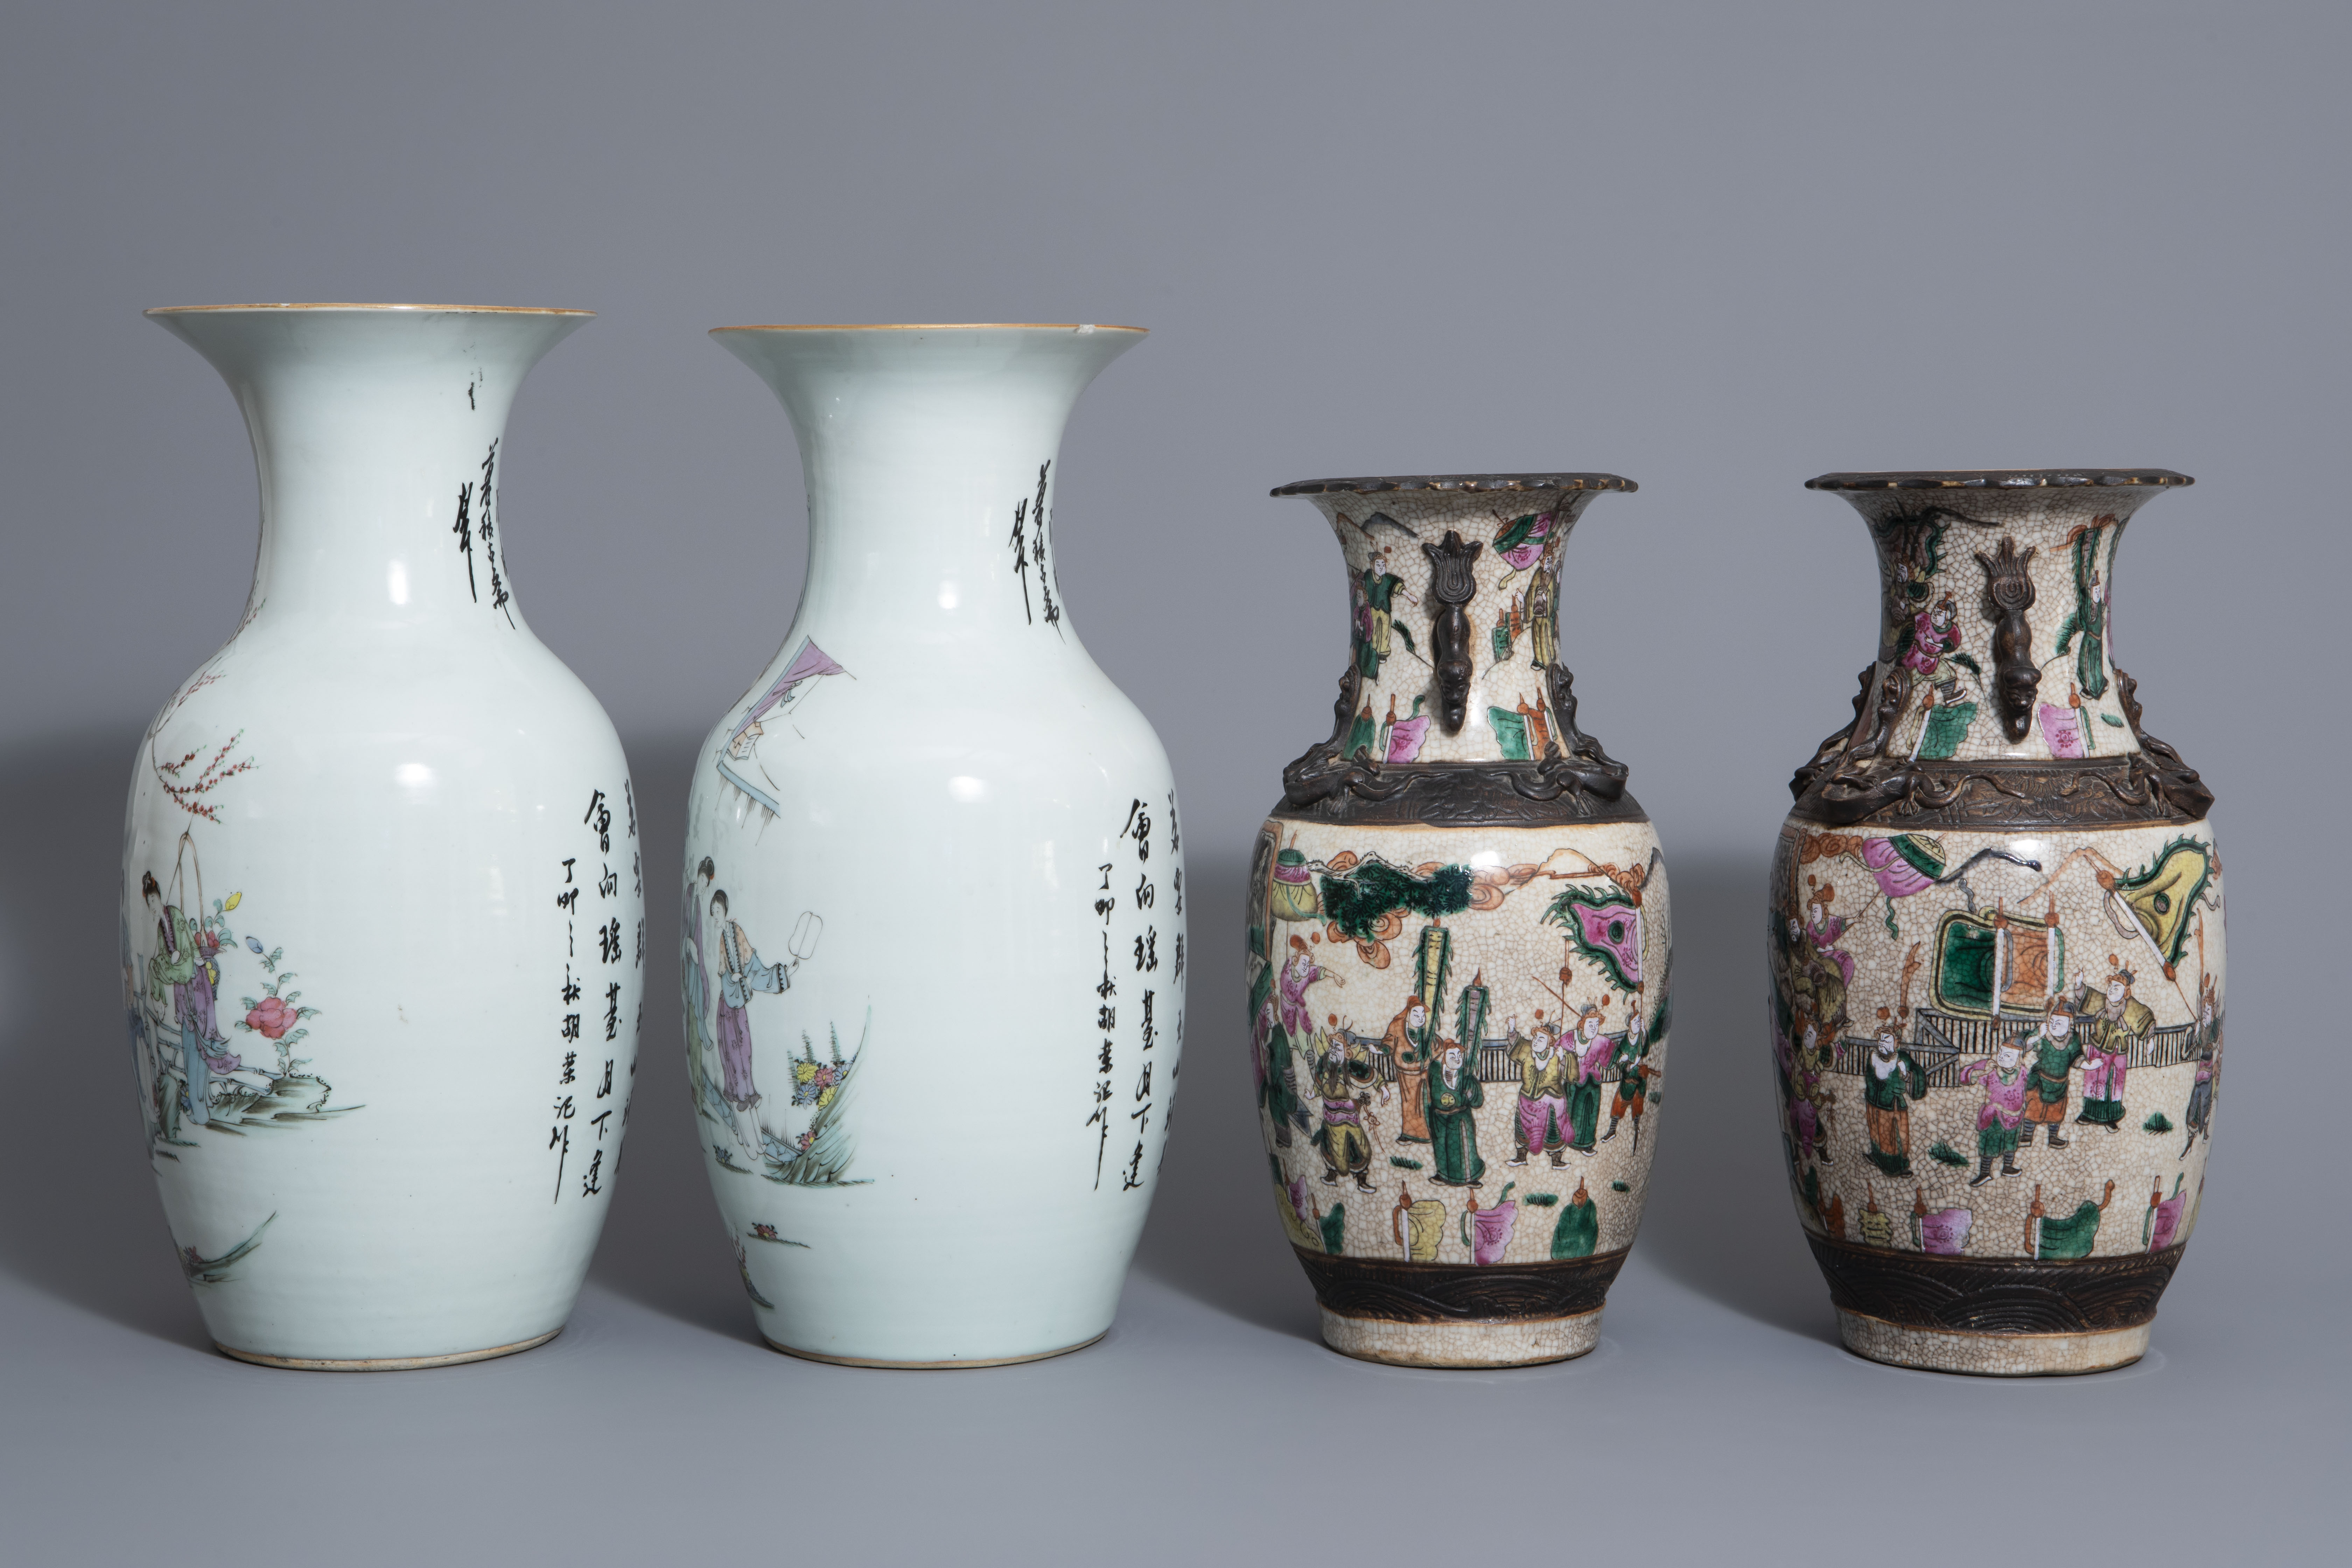 Two pairs of Chinese famille rose and Nanking crackle glazed vases, 19th/20th C. - Image 5 of 7